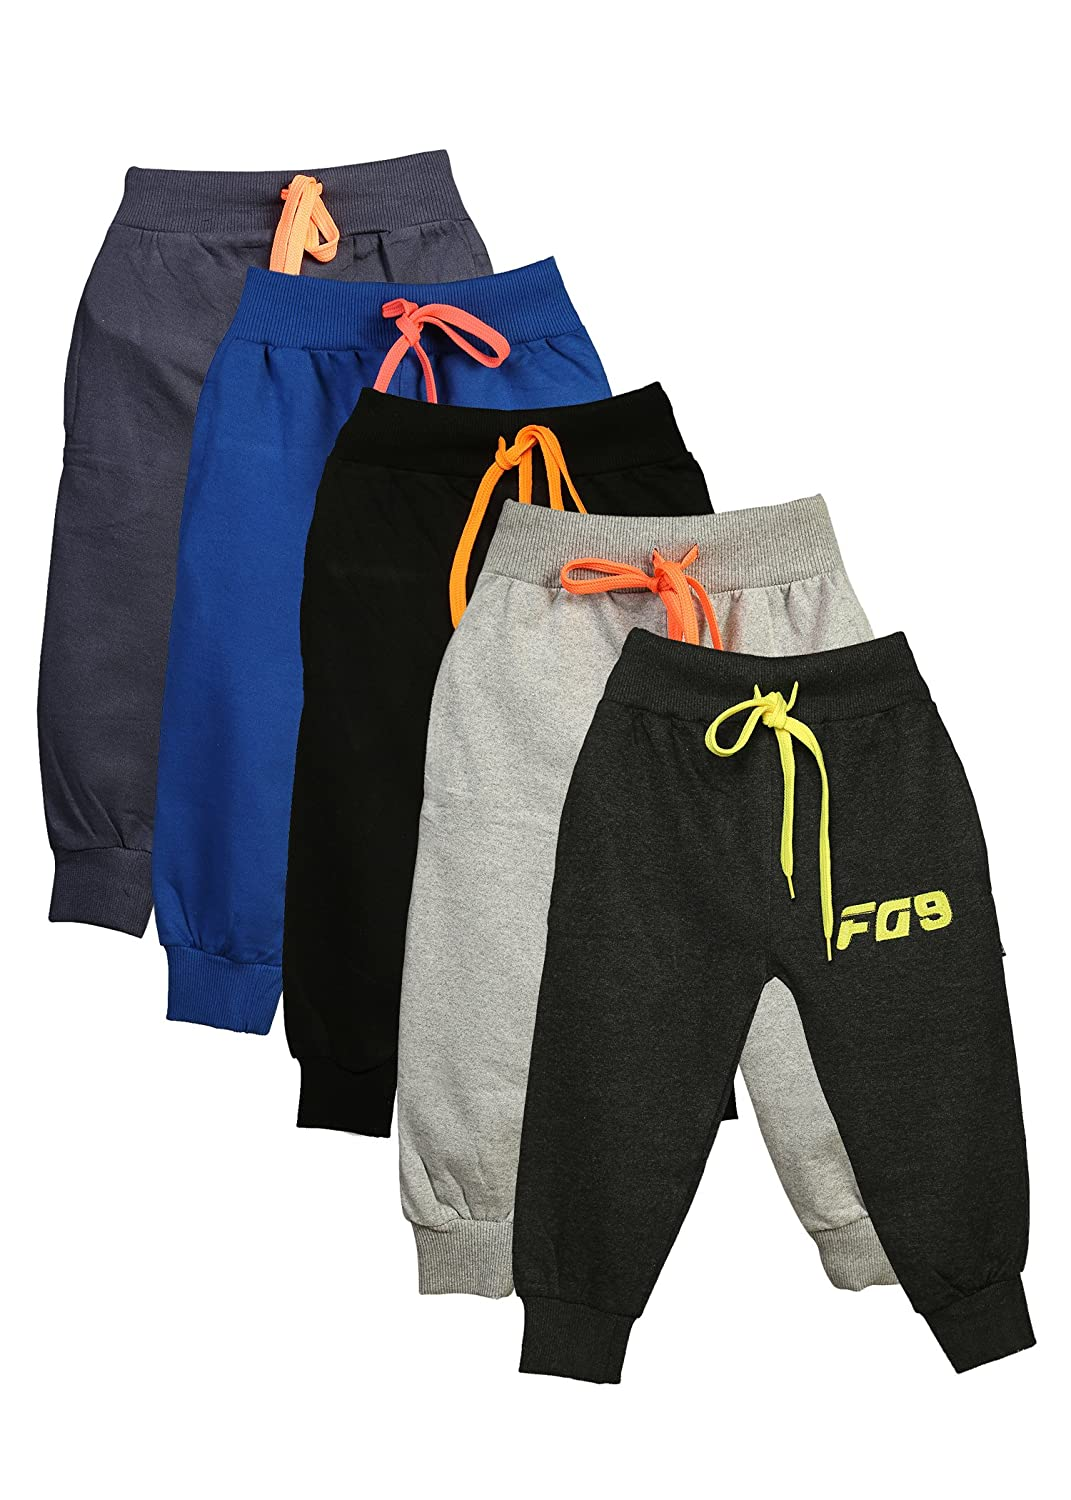 Boys Girls Pants Toddlers Cotton Track Pant Joggers-Pack Of 5